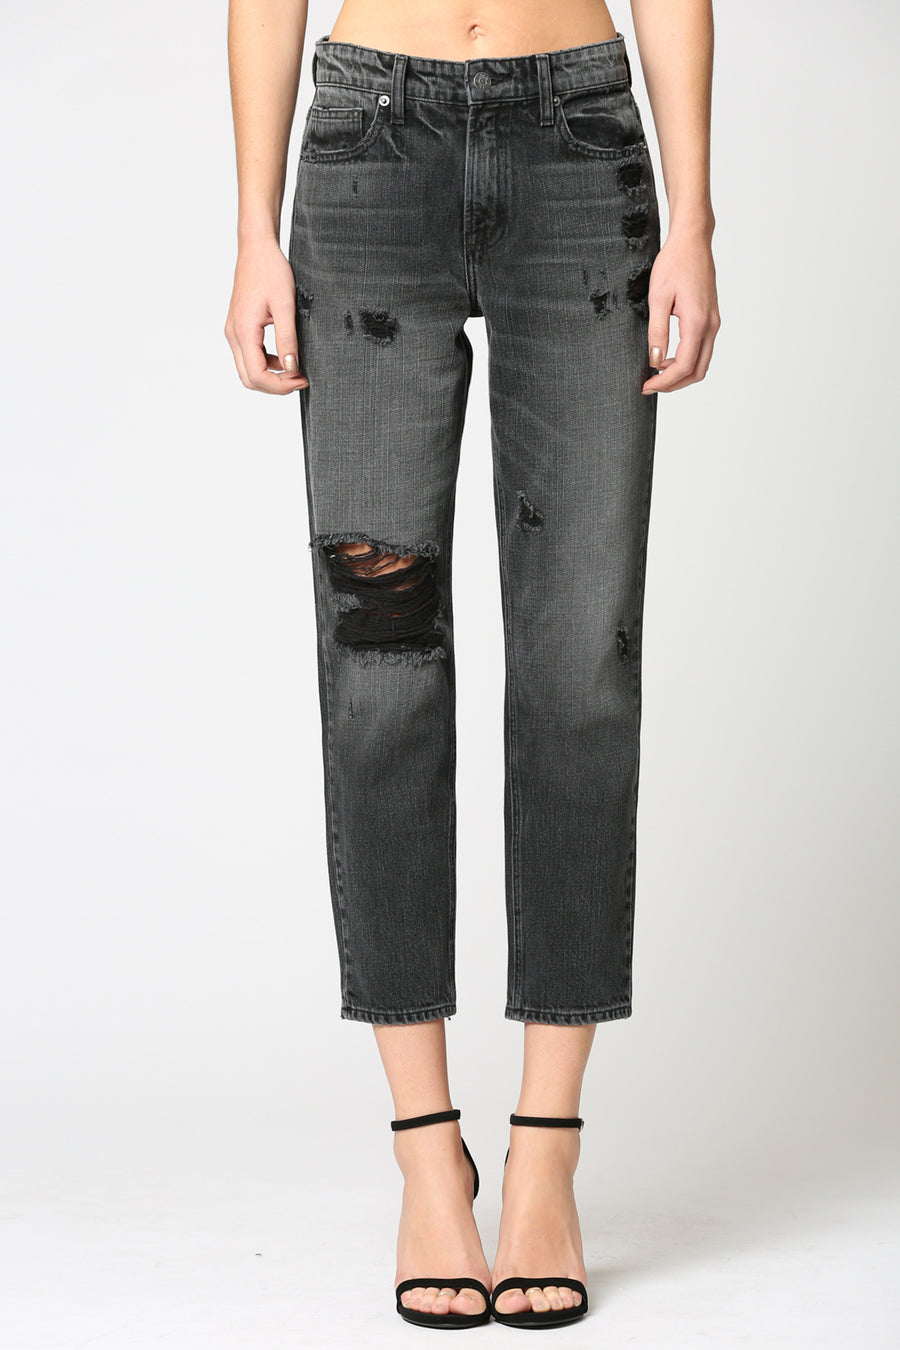 BAILEY<p/> VINTAGE BLACK DISTRESSED SLIM BOYFRIEND